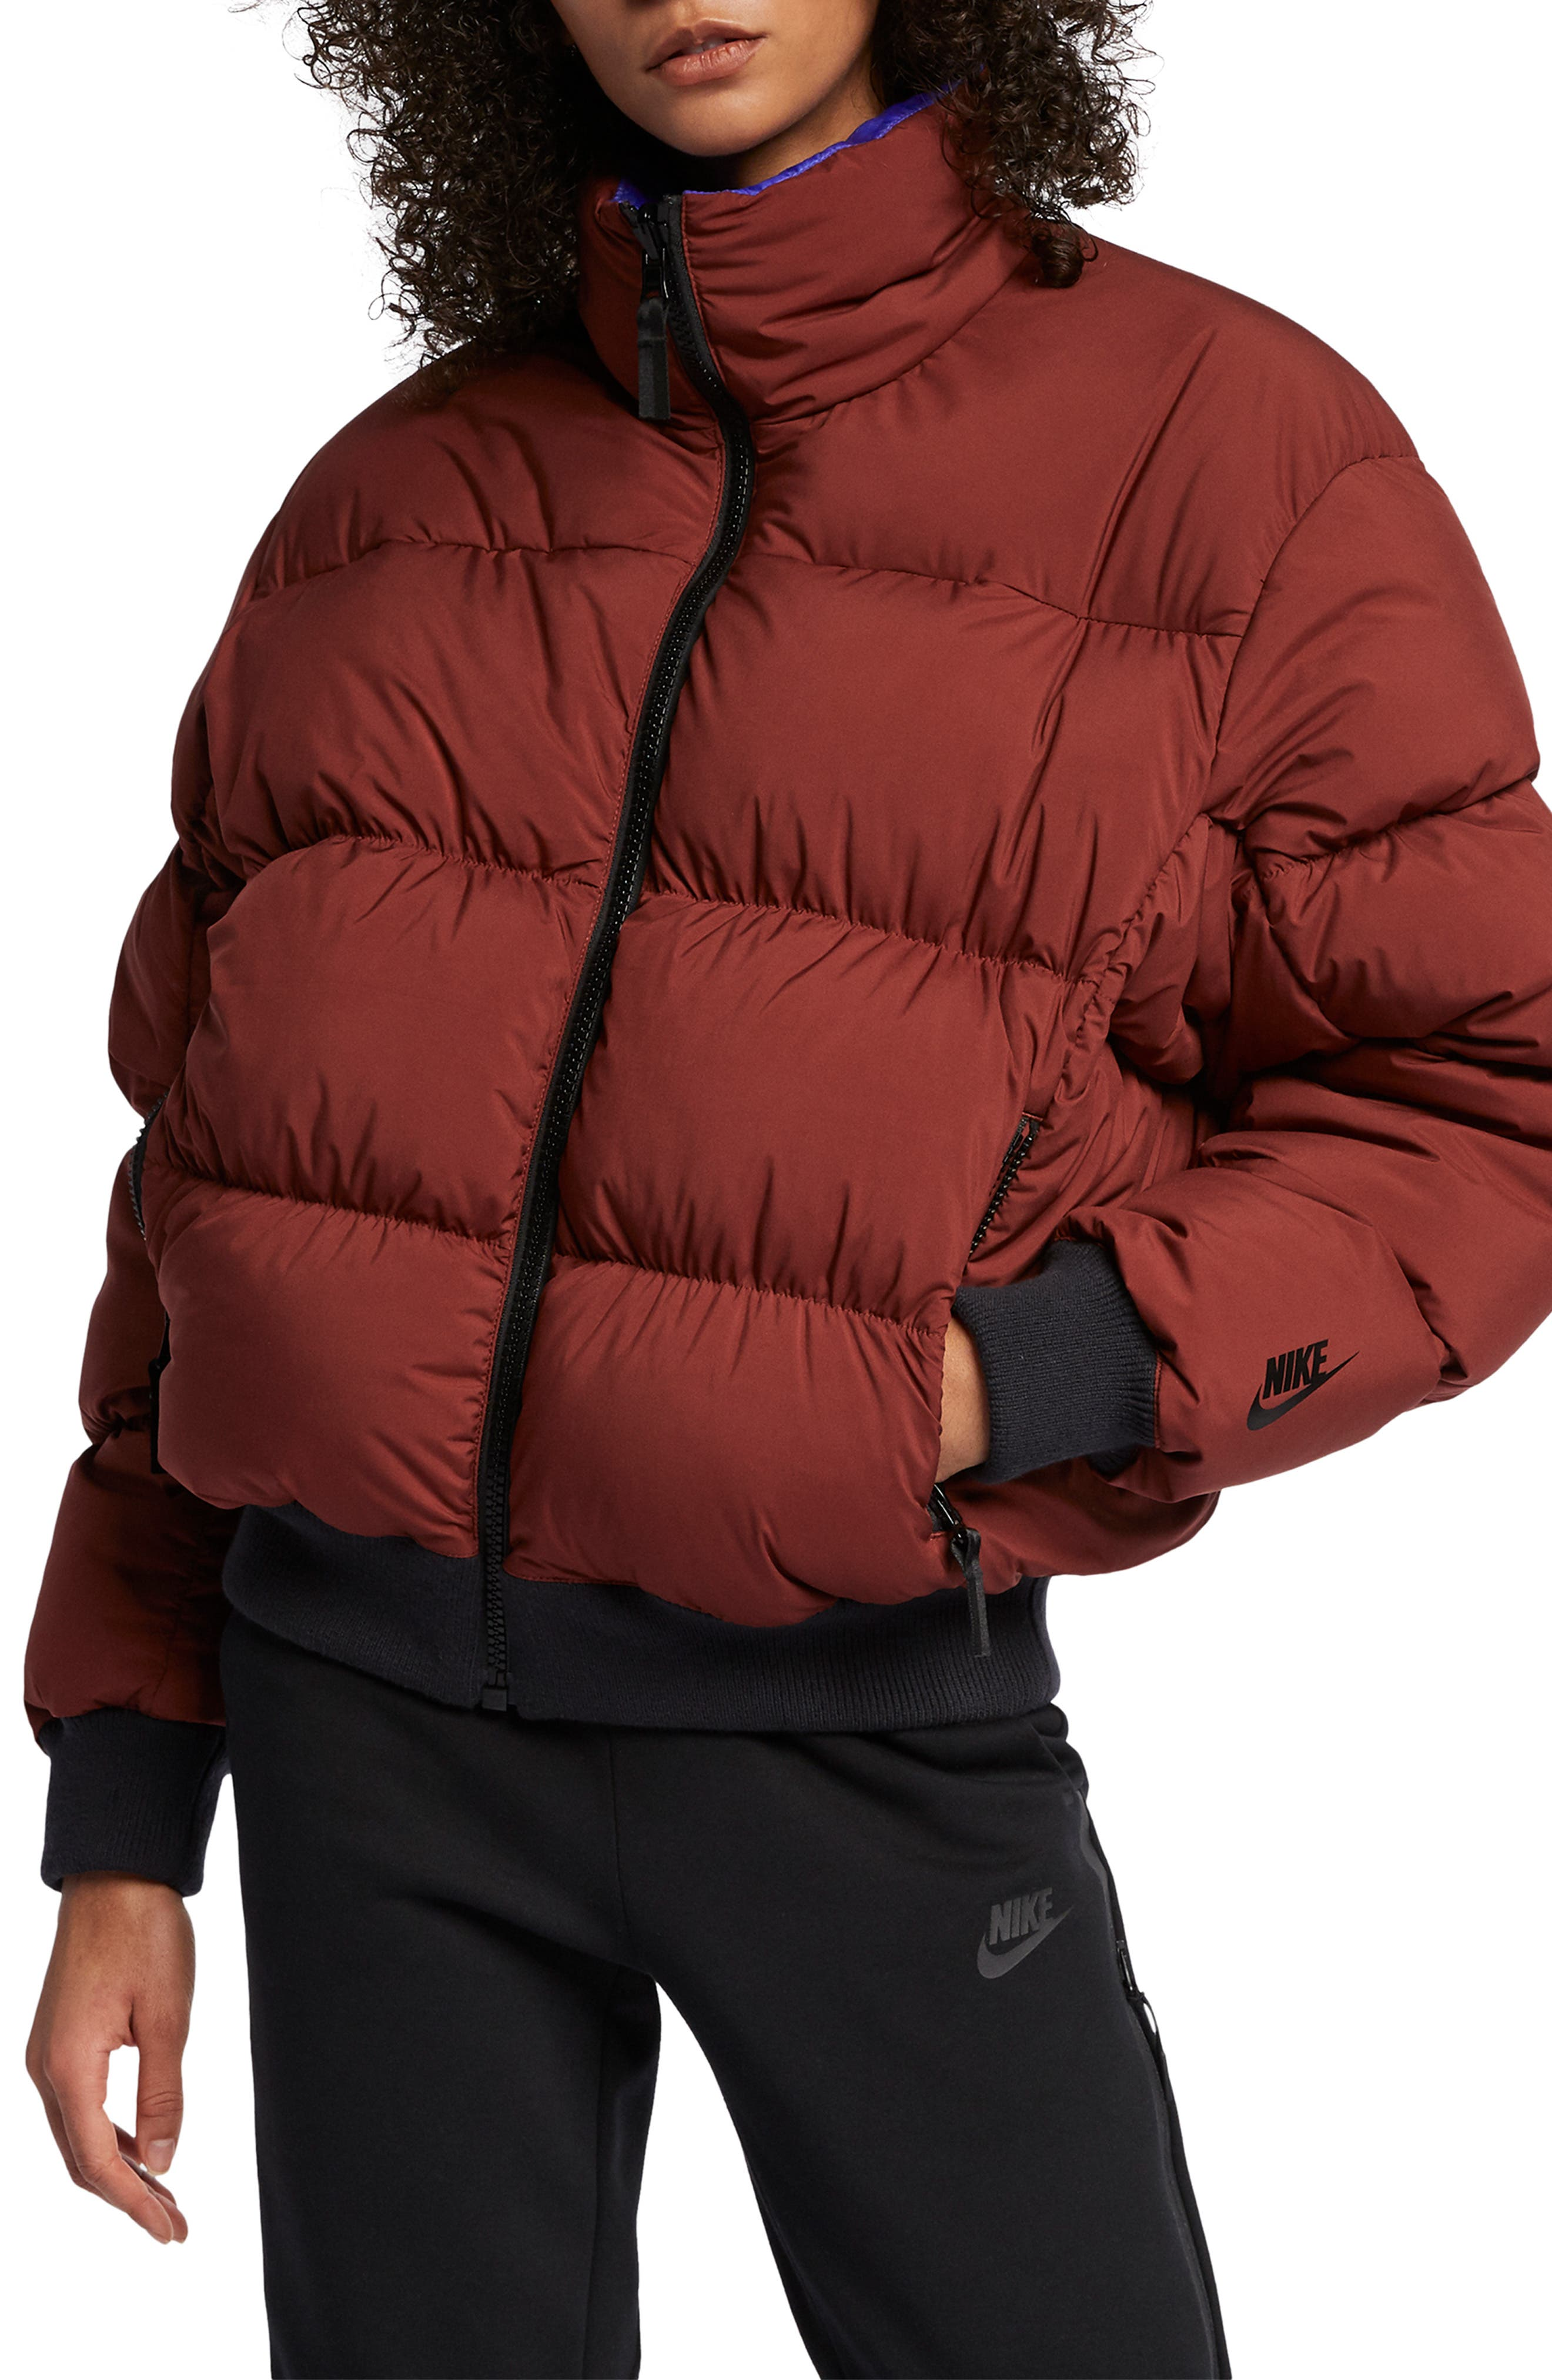 Nike Nrg Reversible Down Fill Puffer Jacket, Beige